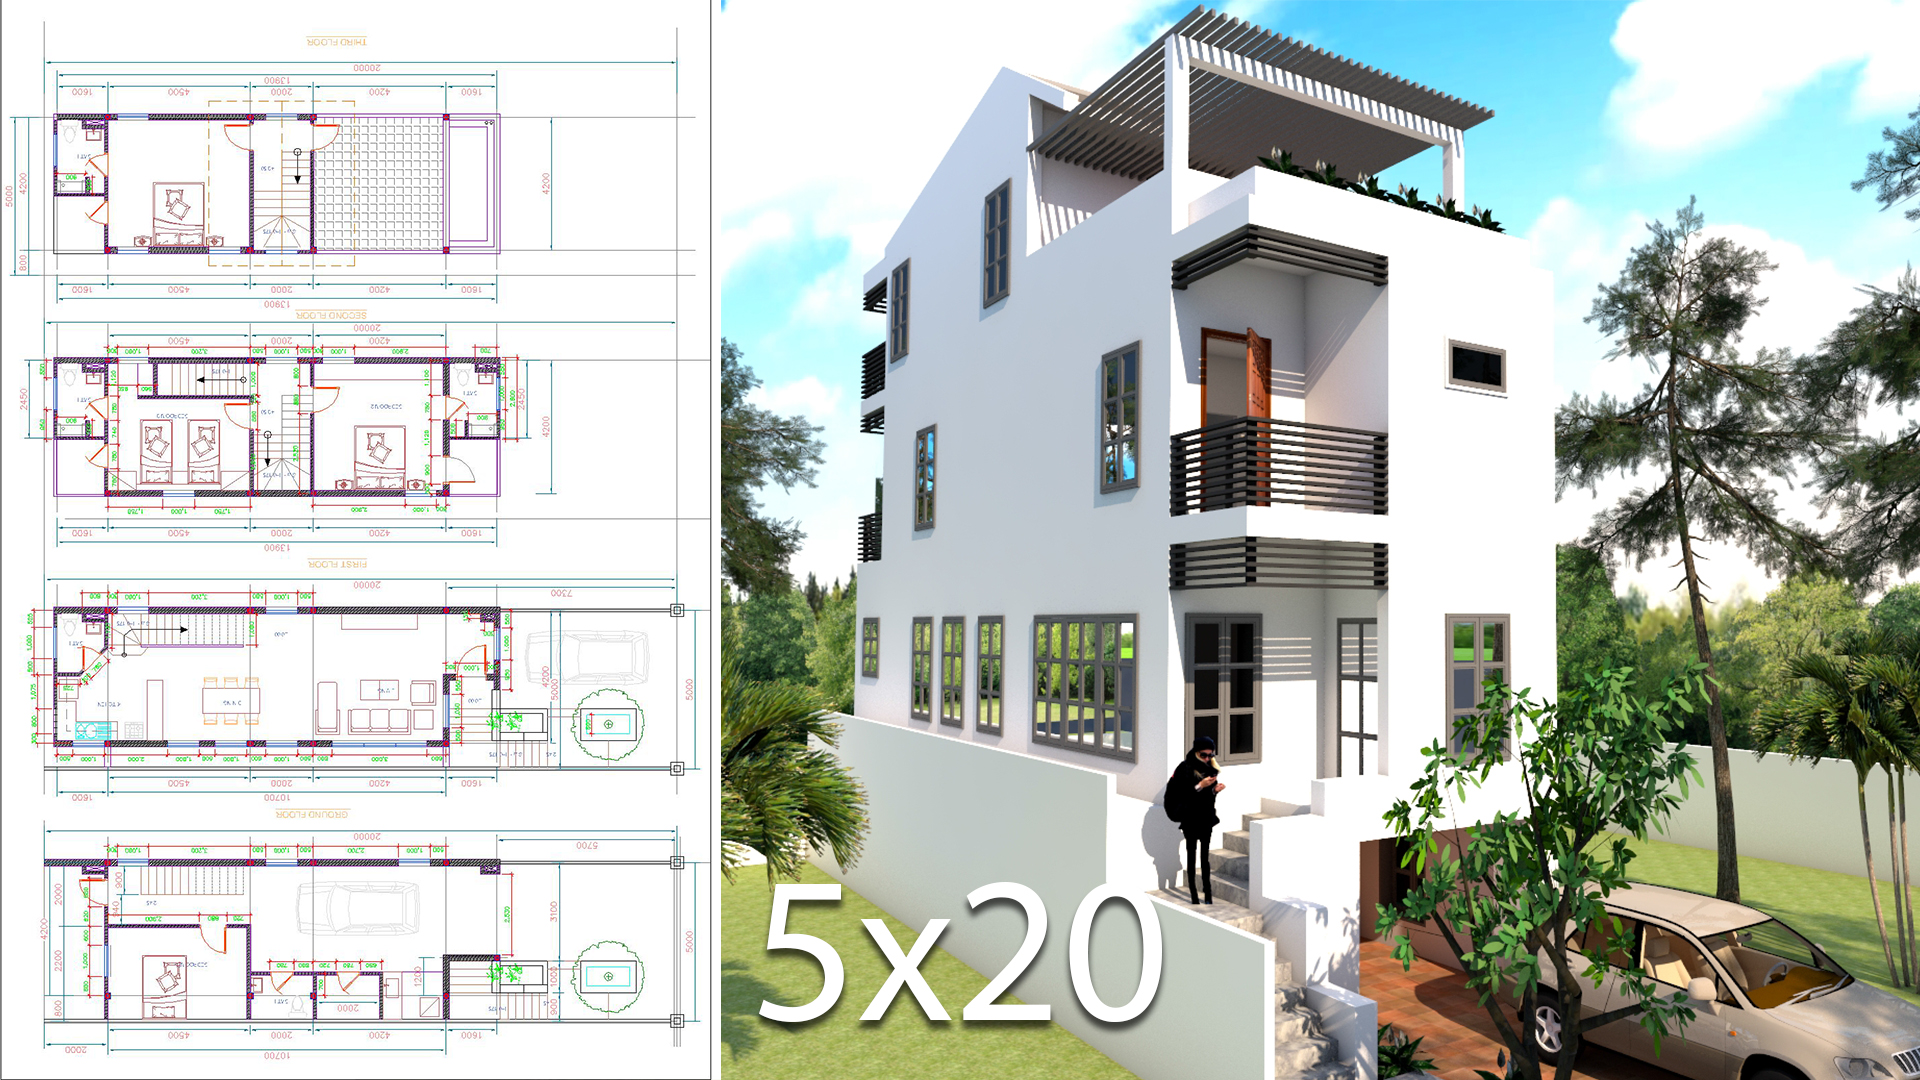 Elevated House Plans for Narrow Lots 5x20 Meter - SamPhoas Plan